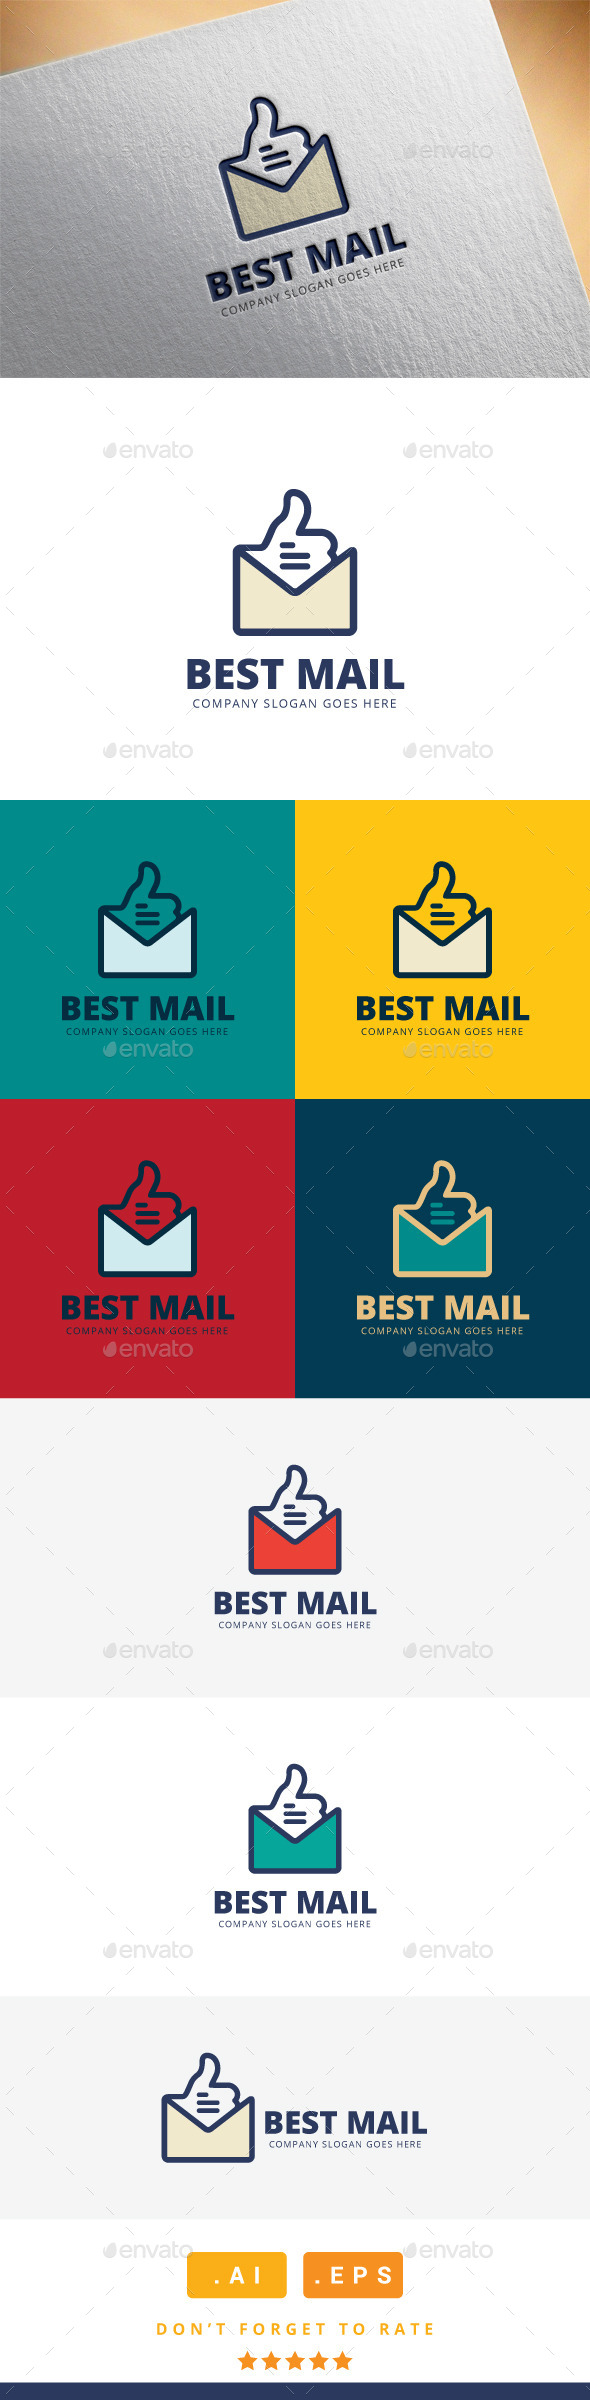 GraphicRiver Best Mail Logo 11608658